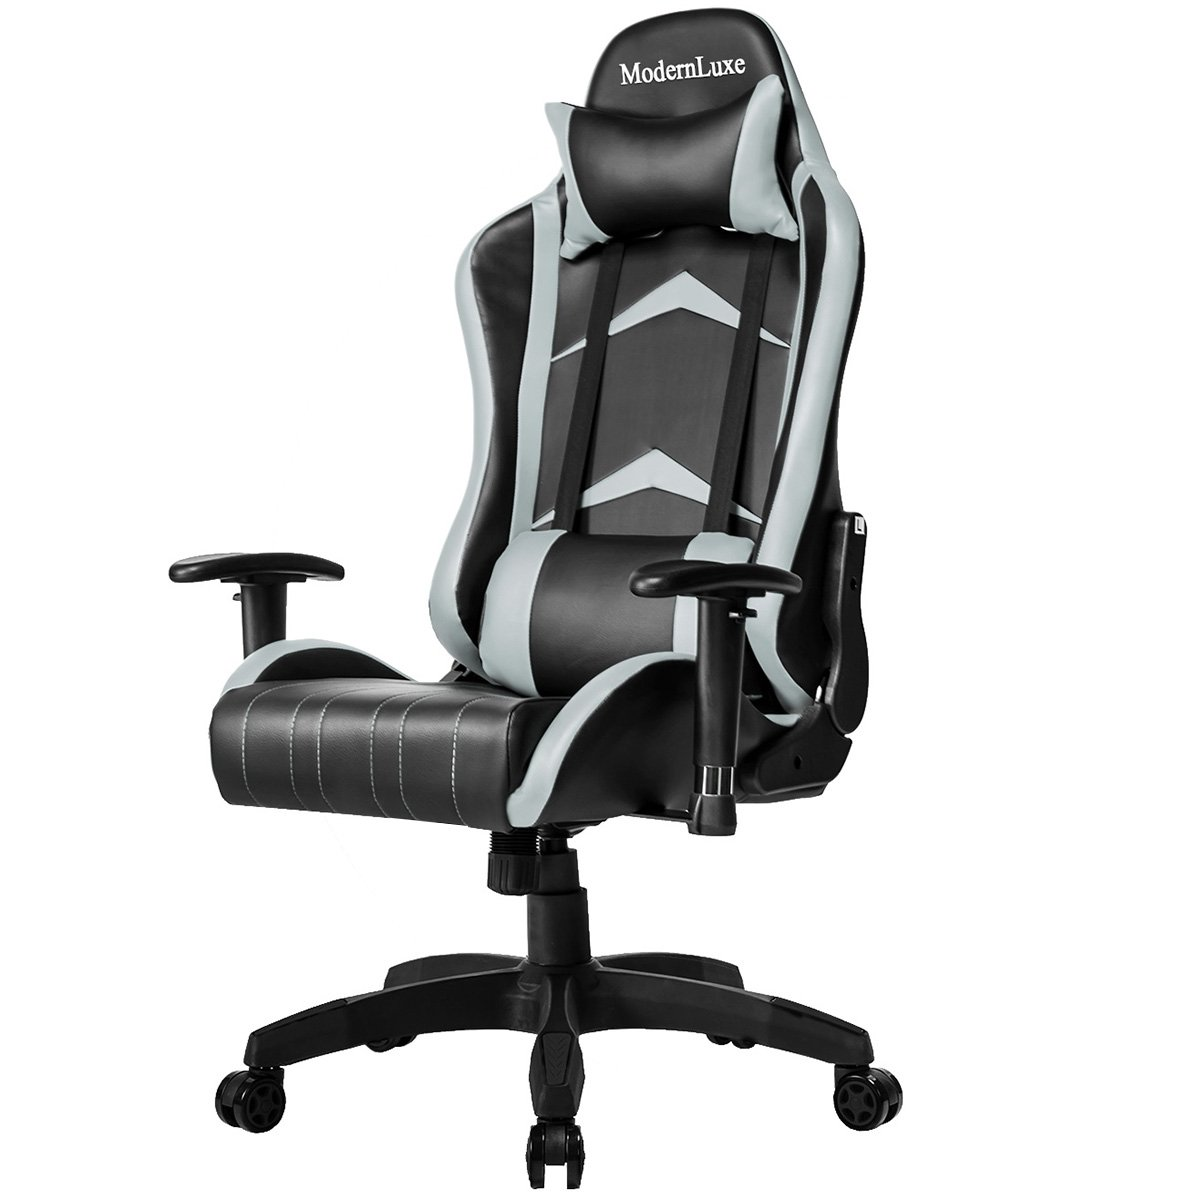 Modern Luxe Racing Style PU Leather Office Chair Swivel Computer Gaming Chair Executive Reclining Chair Grey